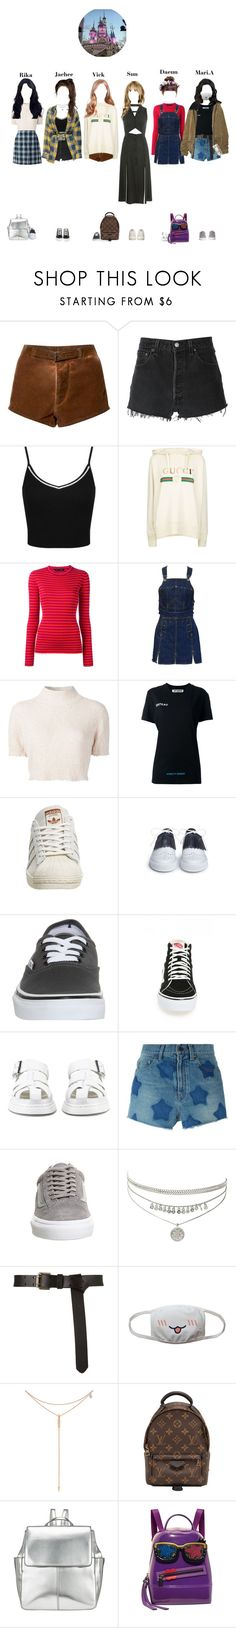 """""""Lotte World with 4U"""" by starz-official on Polyvore featuring Paskal, RE/DONE, Miss Selfridge, Gucci, Proenza Schouler, Jean-Paul Gaultier, Rachel Comey, Off-White, Lands' End and adidas"""